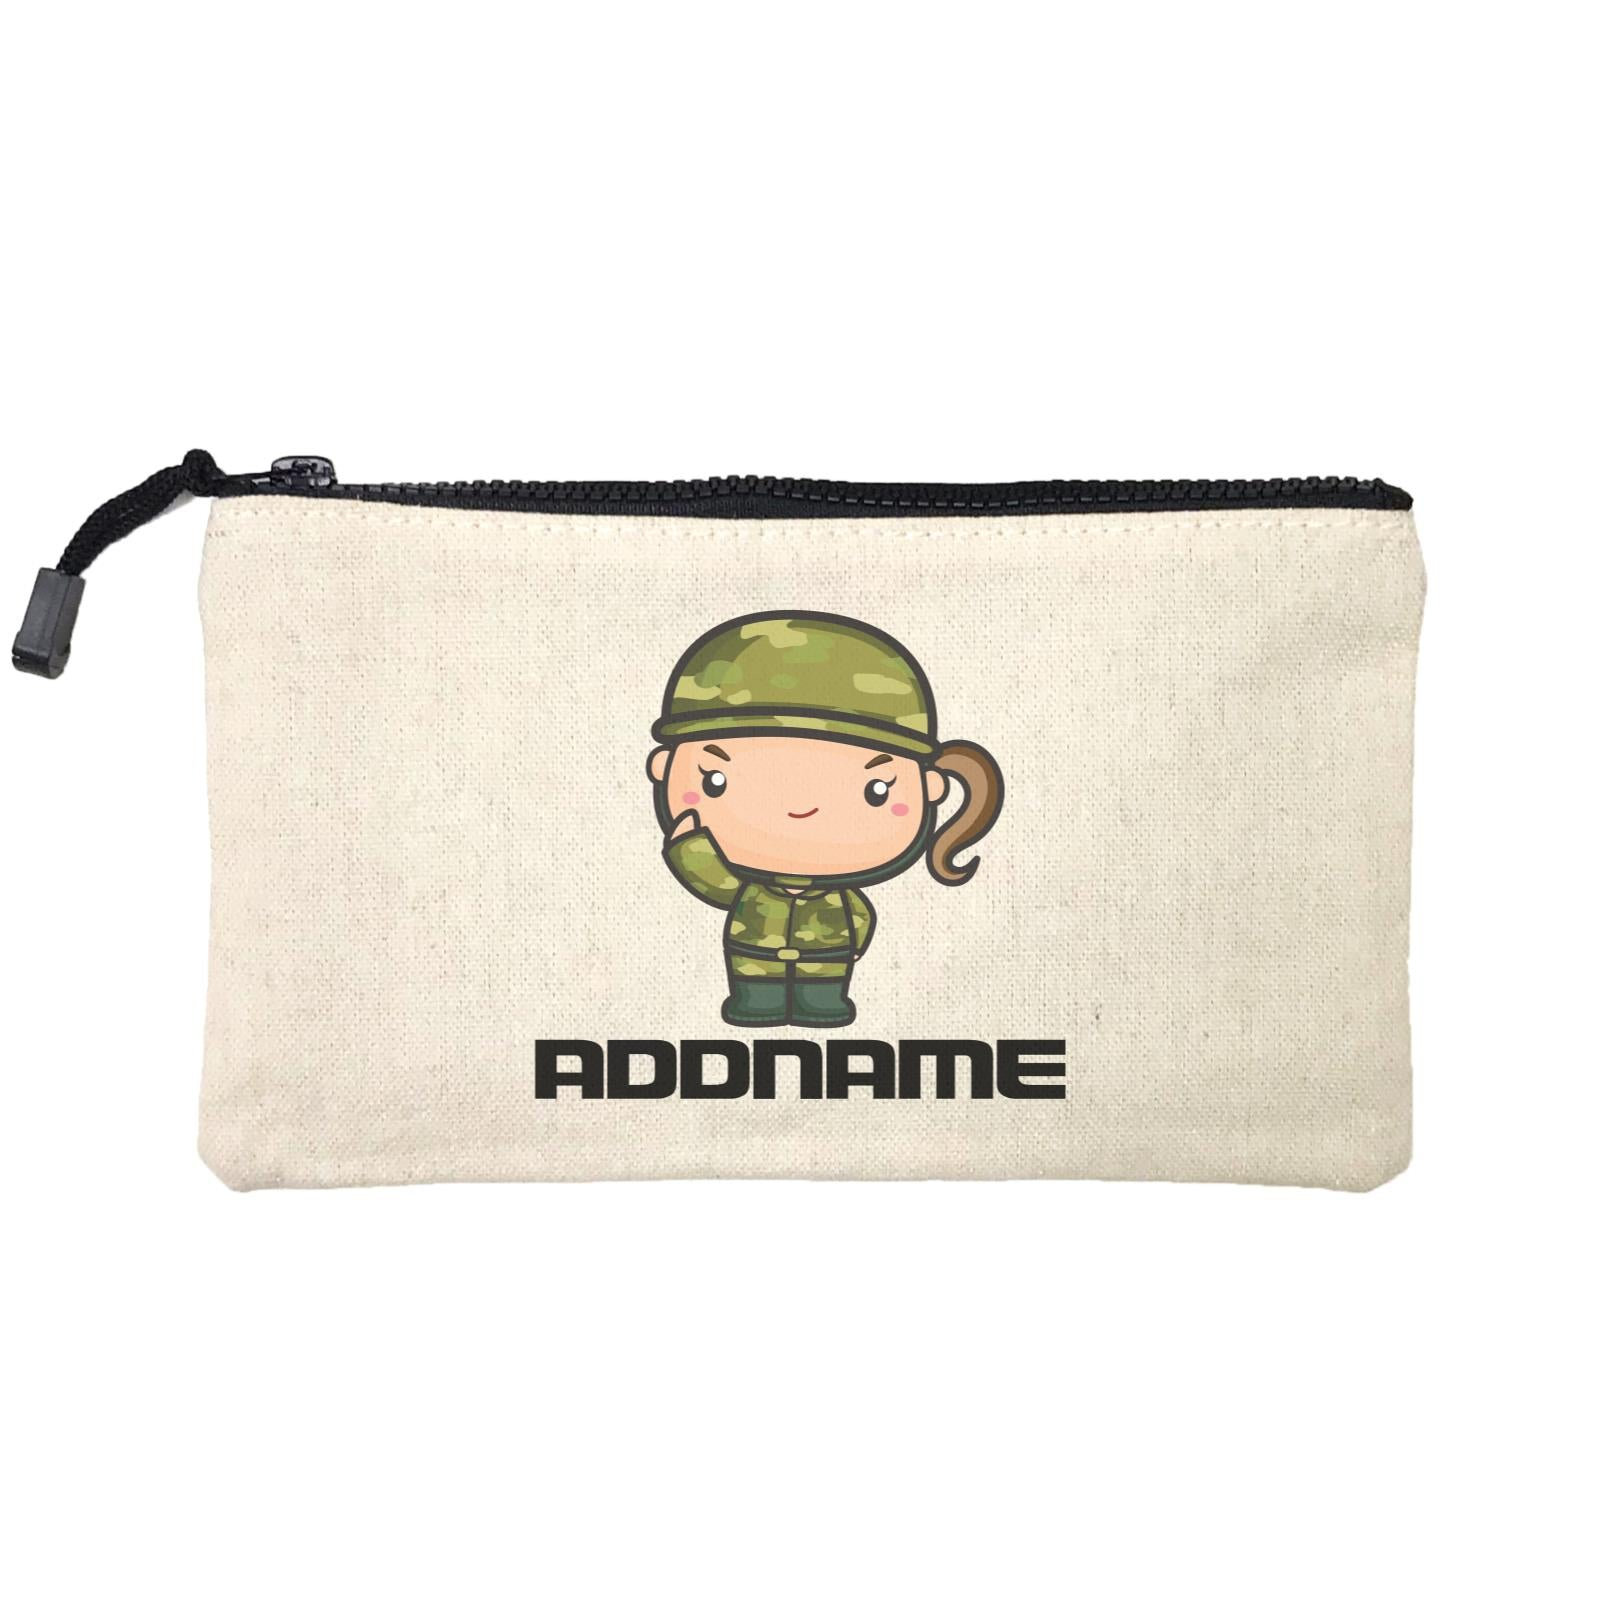 Birthday Battle Theme Army Soldier Girl Addname Mini Accessories Stationery Pouch